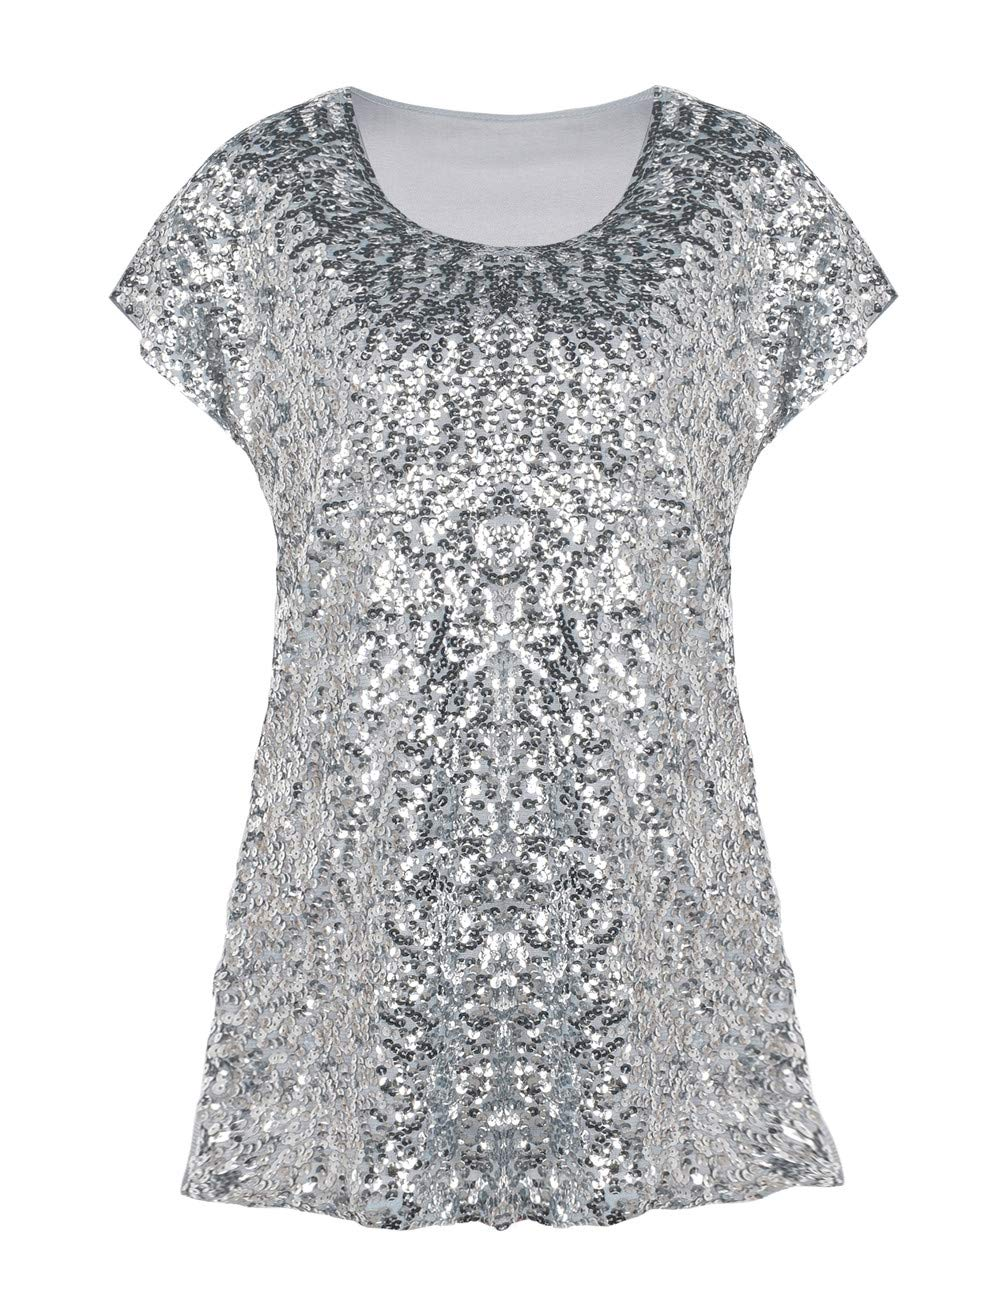 PrettyGuide Women's Sequin Blouse Loose Fit Flashy Party Tops Dolman Sleeve Silver XXL/US22 by PrettyGuide